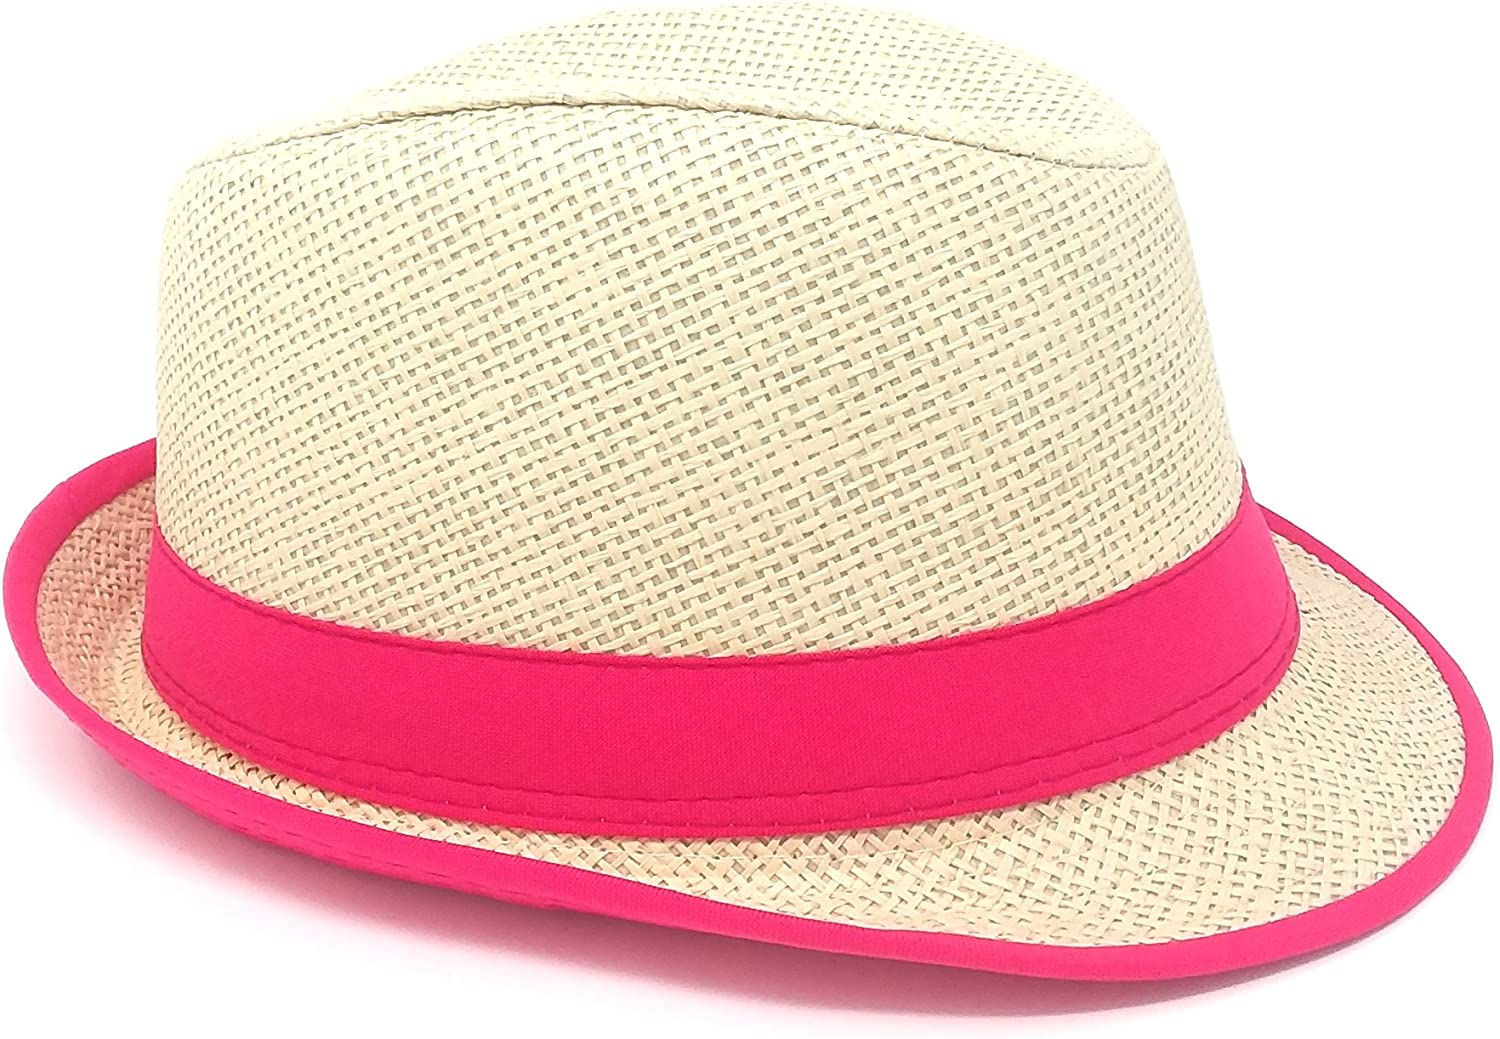 Chachlili Fedoras Lightweight Classic Hat Assorted Colors and Styles Wholesale Bulk LOT